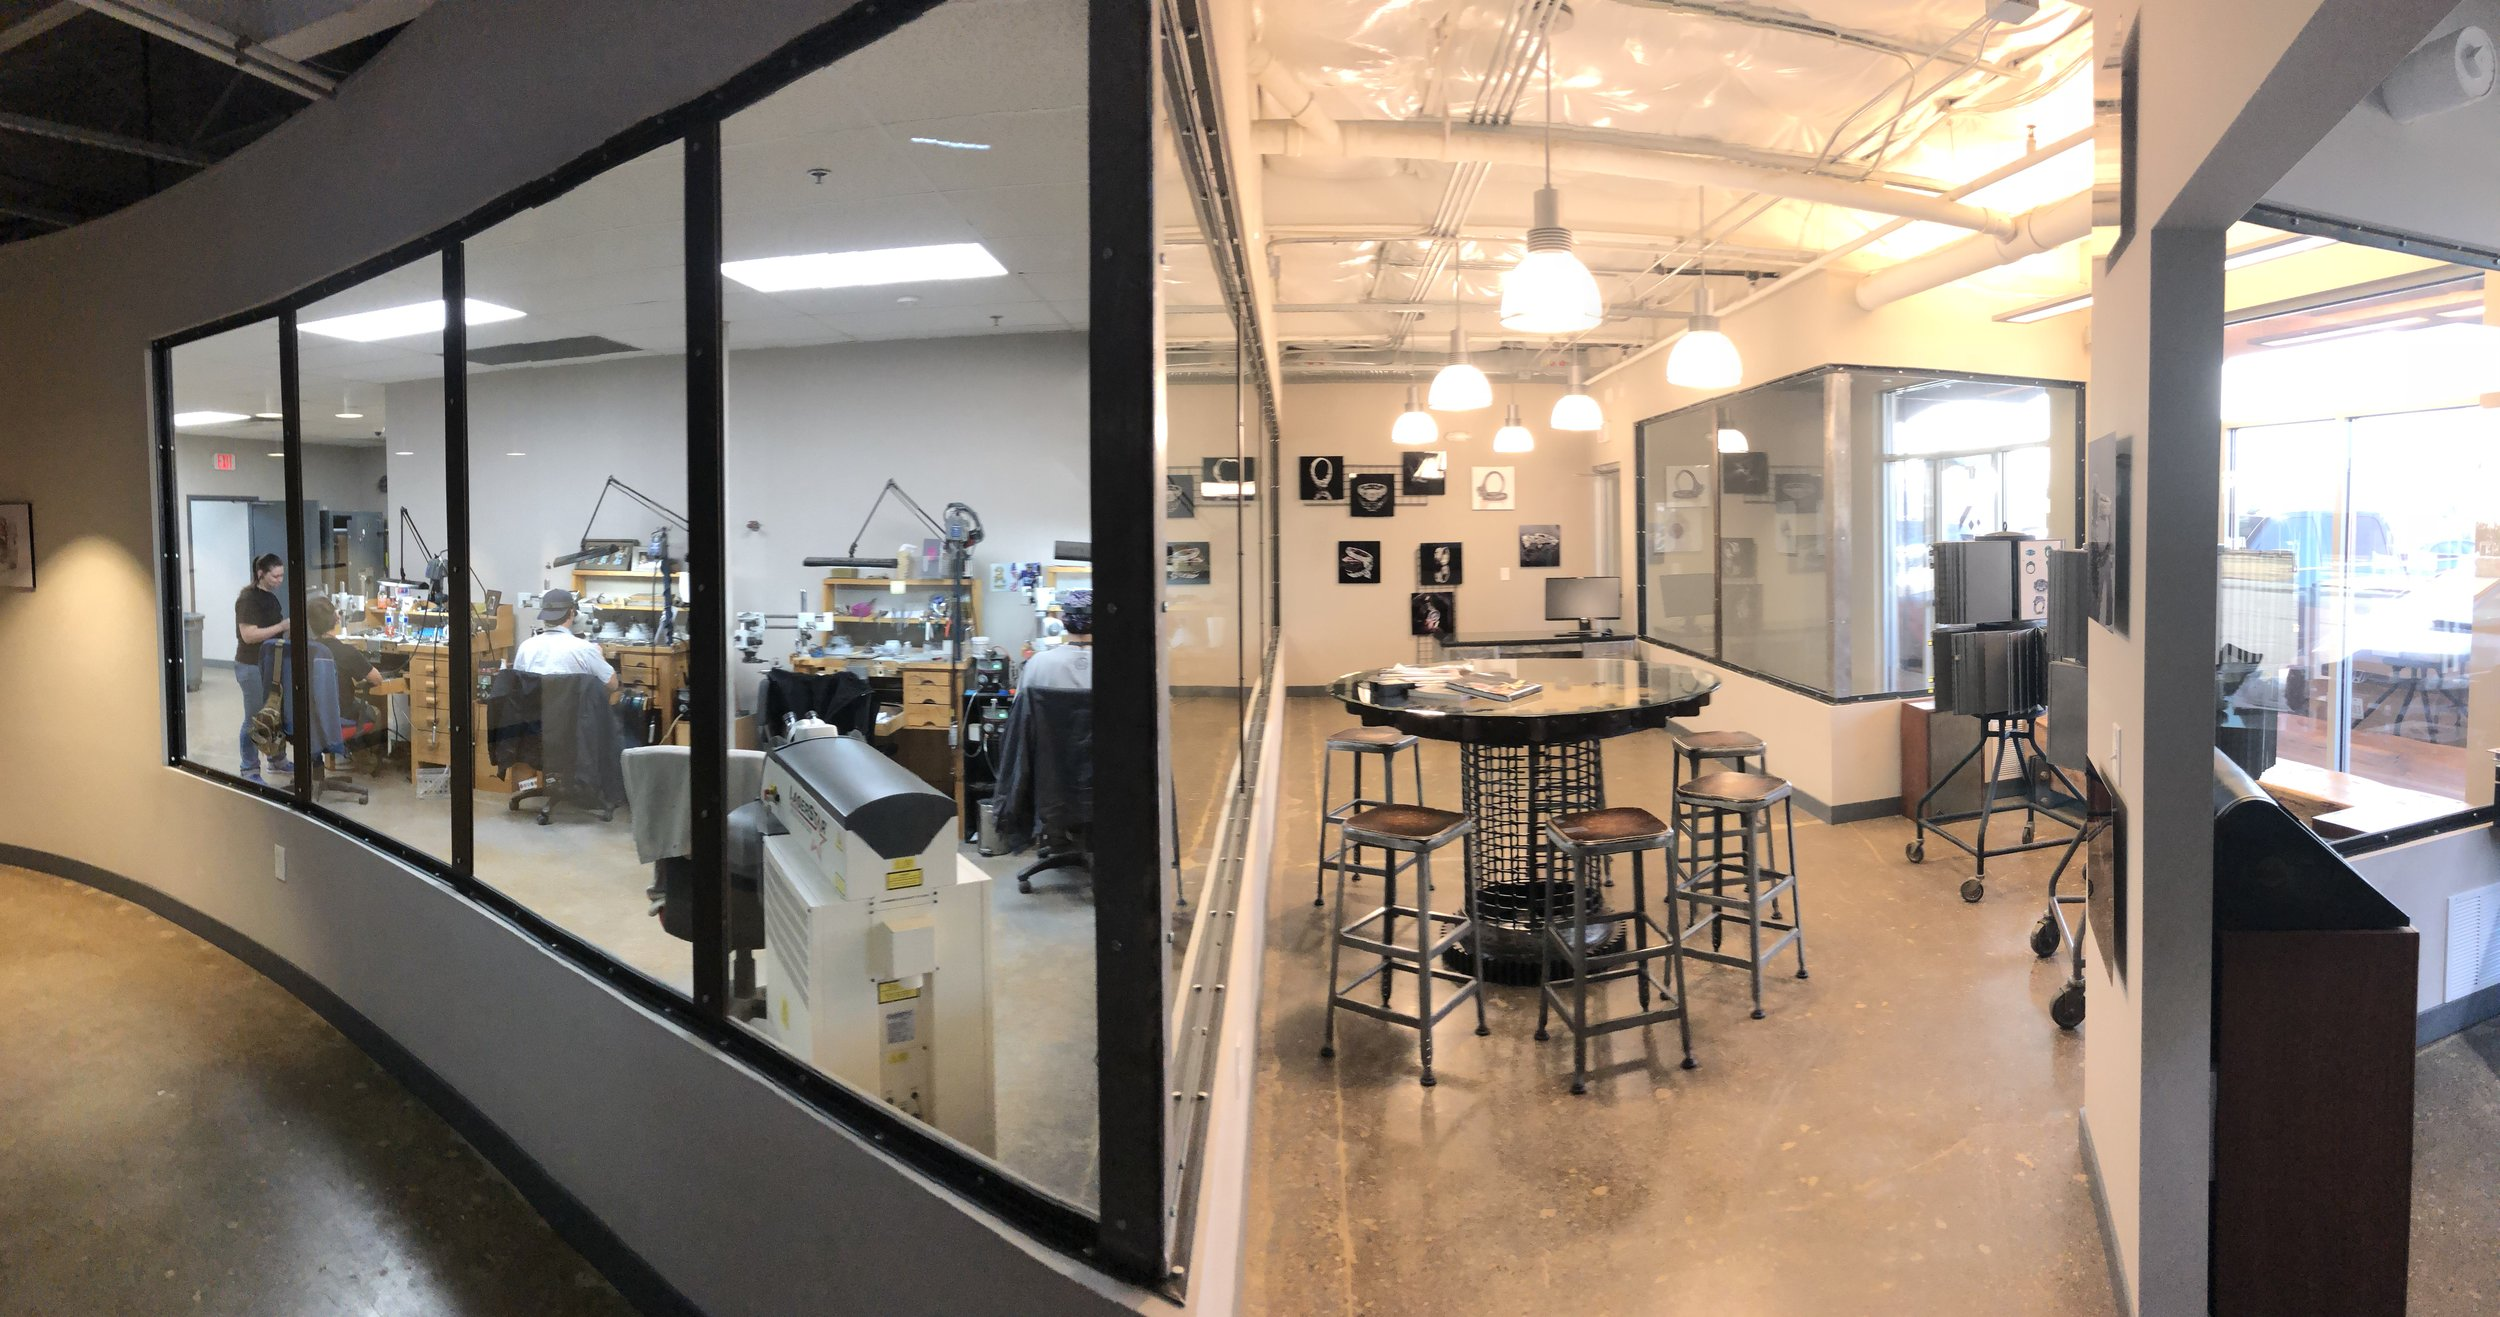 Virtual Tour - Click/tap the image to see a 360 degree view of our studio.